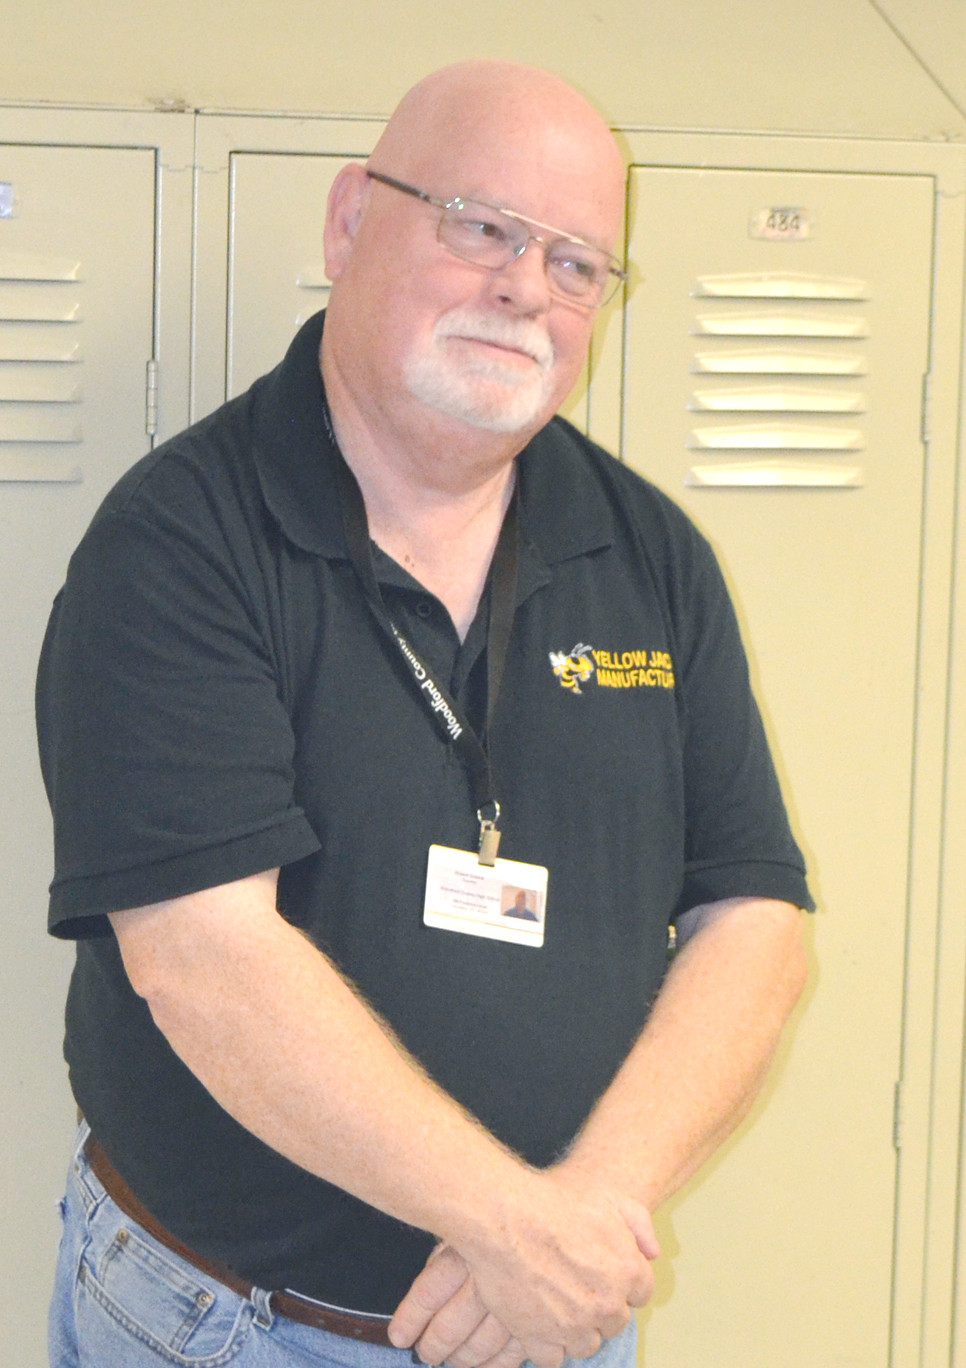 "ROBERT GREENE chatted with teachers and students while monitoring the hallway outside of his classroom at Woodford County High School. ""There's just a great community feeling here,"" says Greene, 2018-19 Teacher of the Year at WCHS. (Photo by Bob Vlach)"